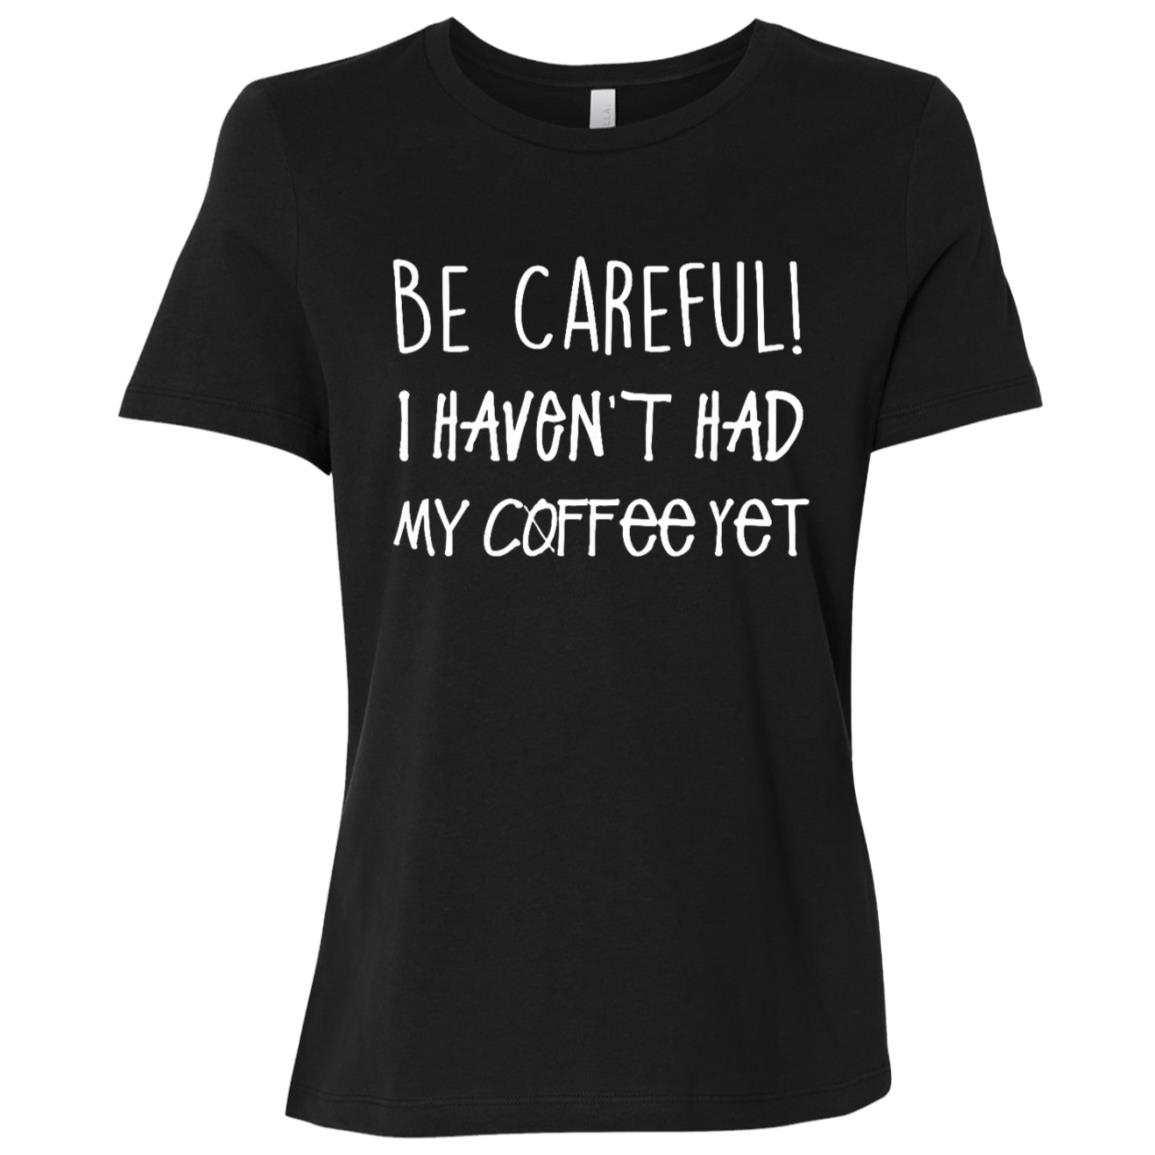 Be Careful I Haven't Had My Coffee Yet – Sarcastic Women Short Sleeve T-Shirt